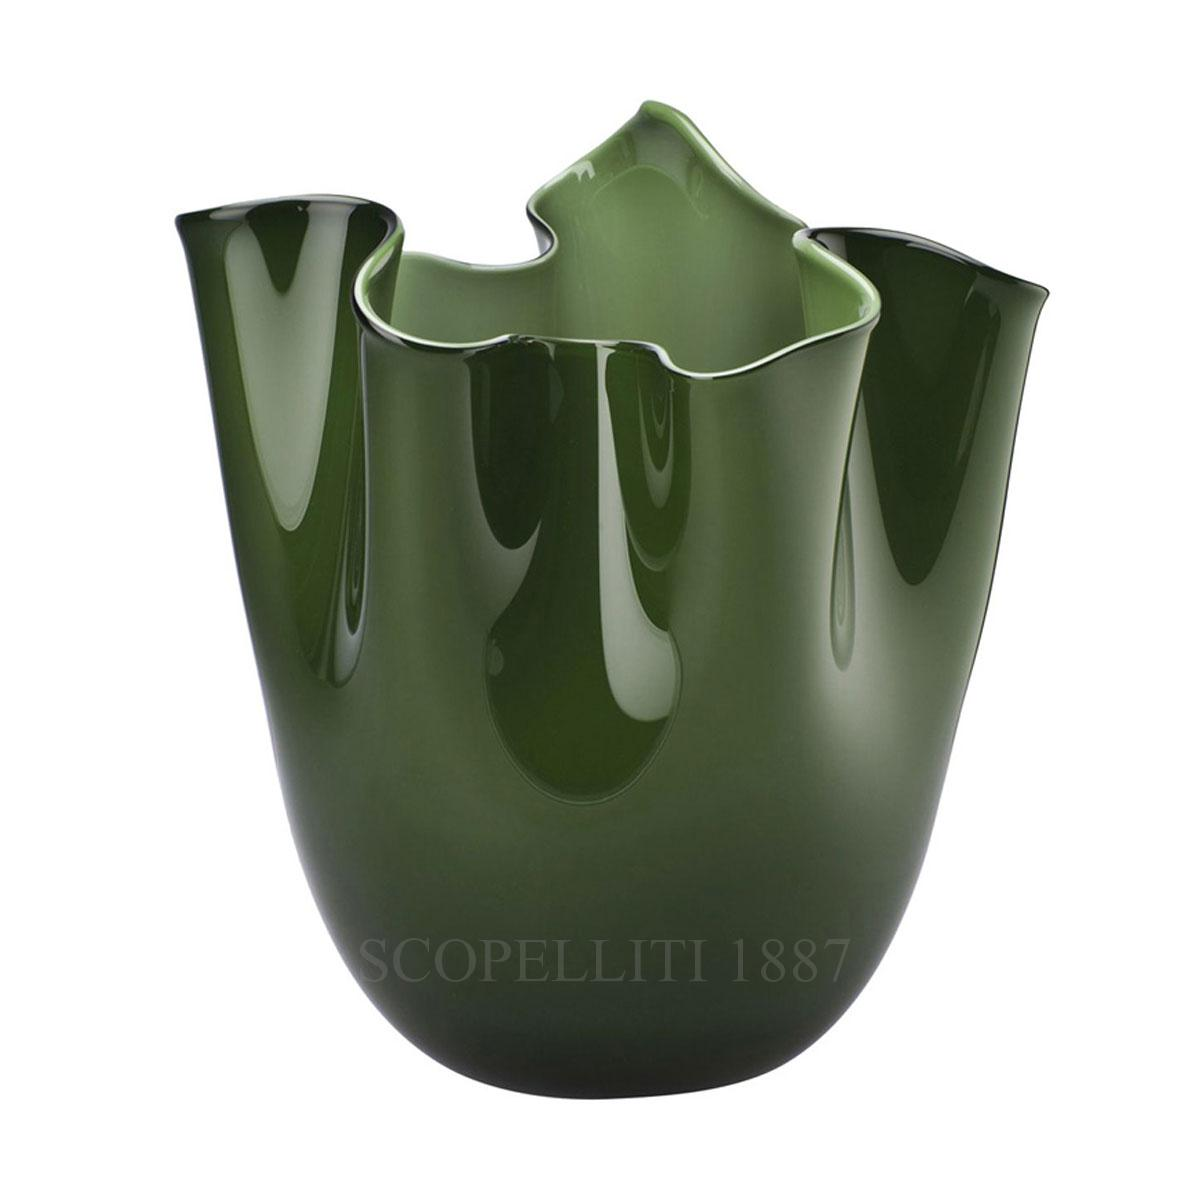 fazzoletto venini murano glass vase green